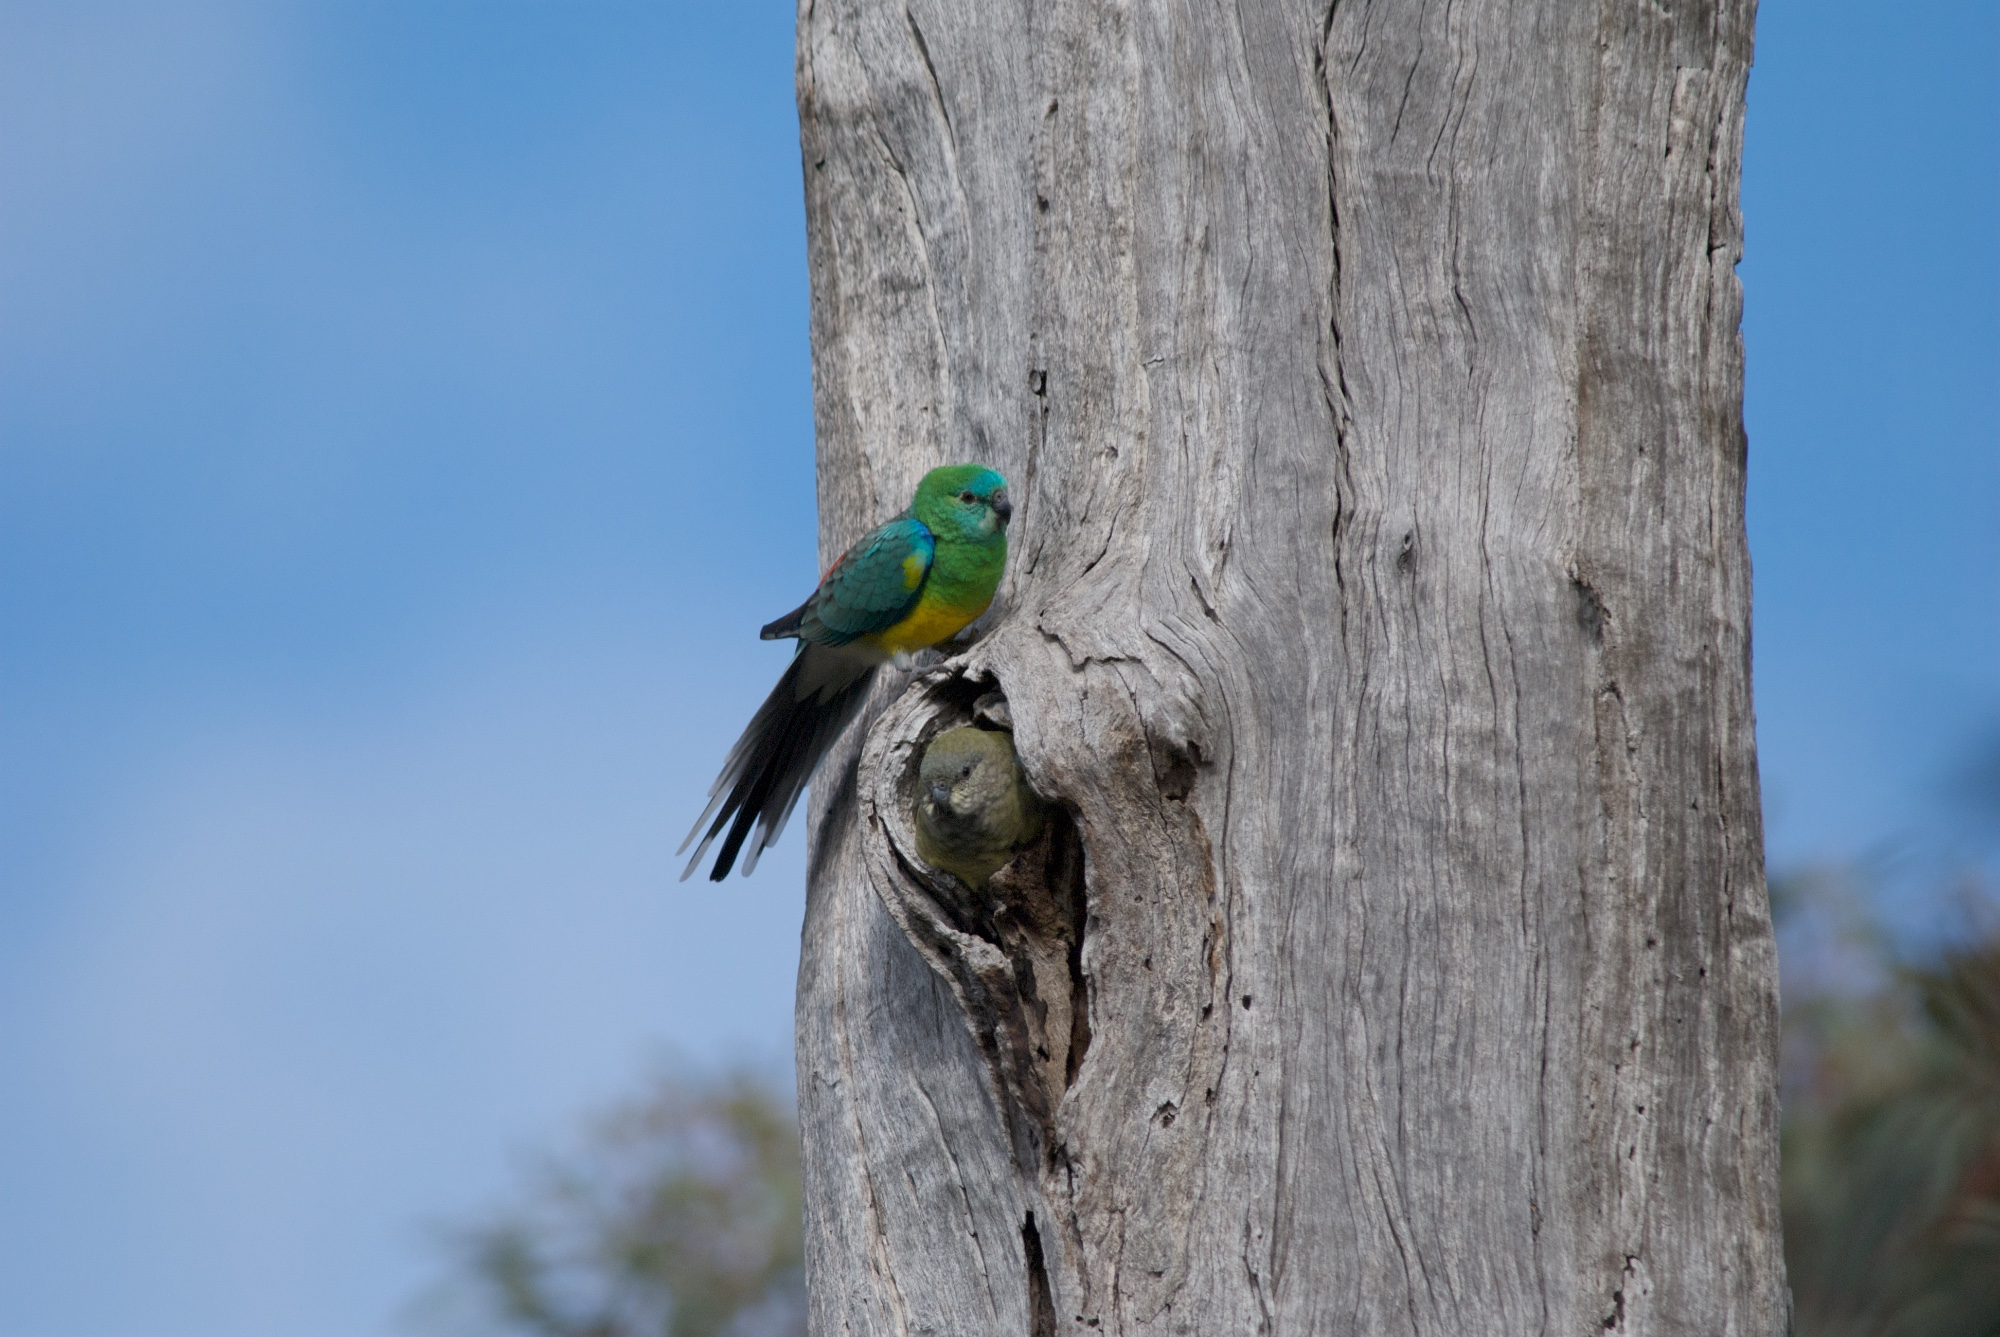 Gery Box provides a suitable nesting site. Here a pair of Red-rumoed Parrots are one of three pairs in this old tree.